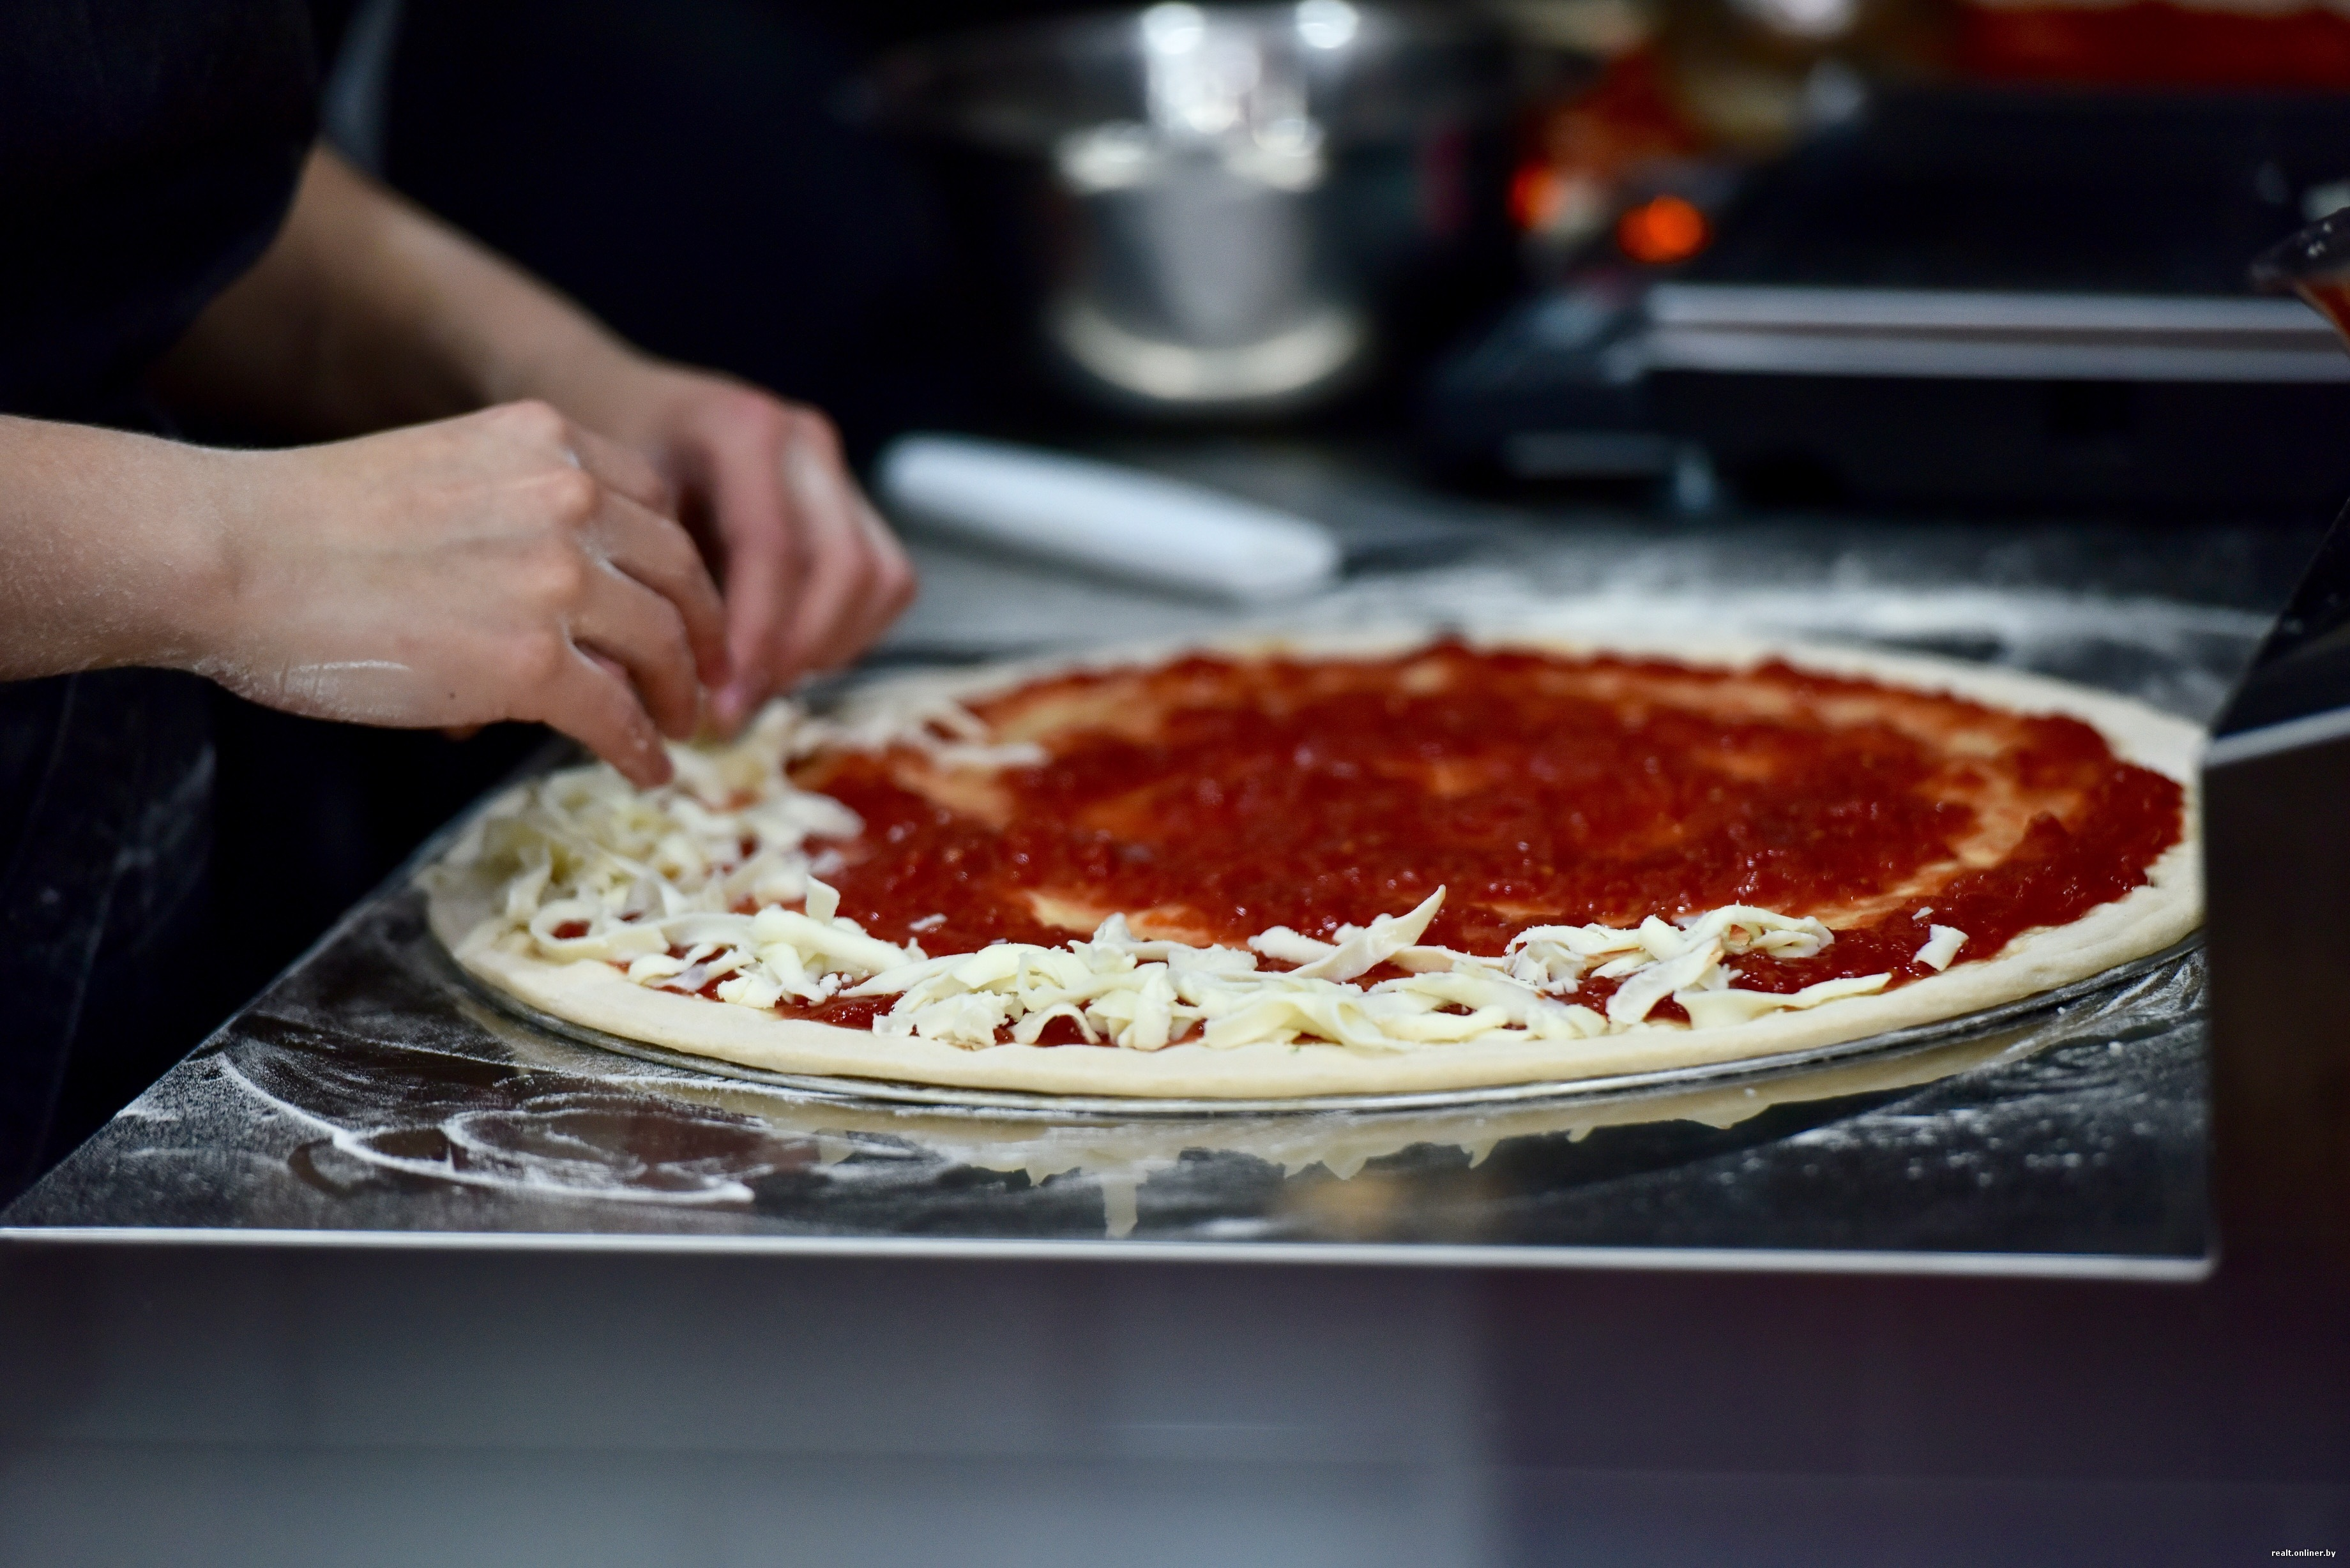 Making a pizza test - photo